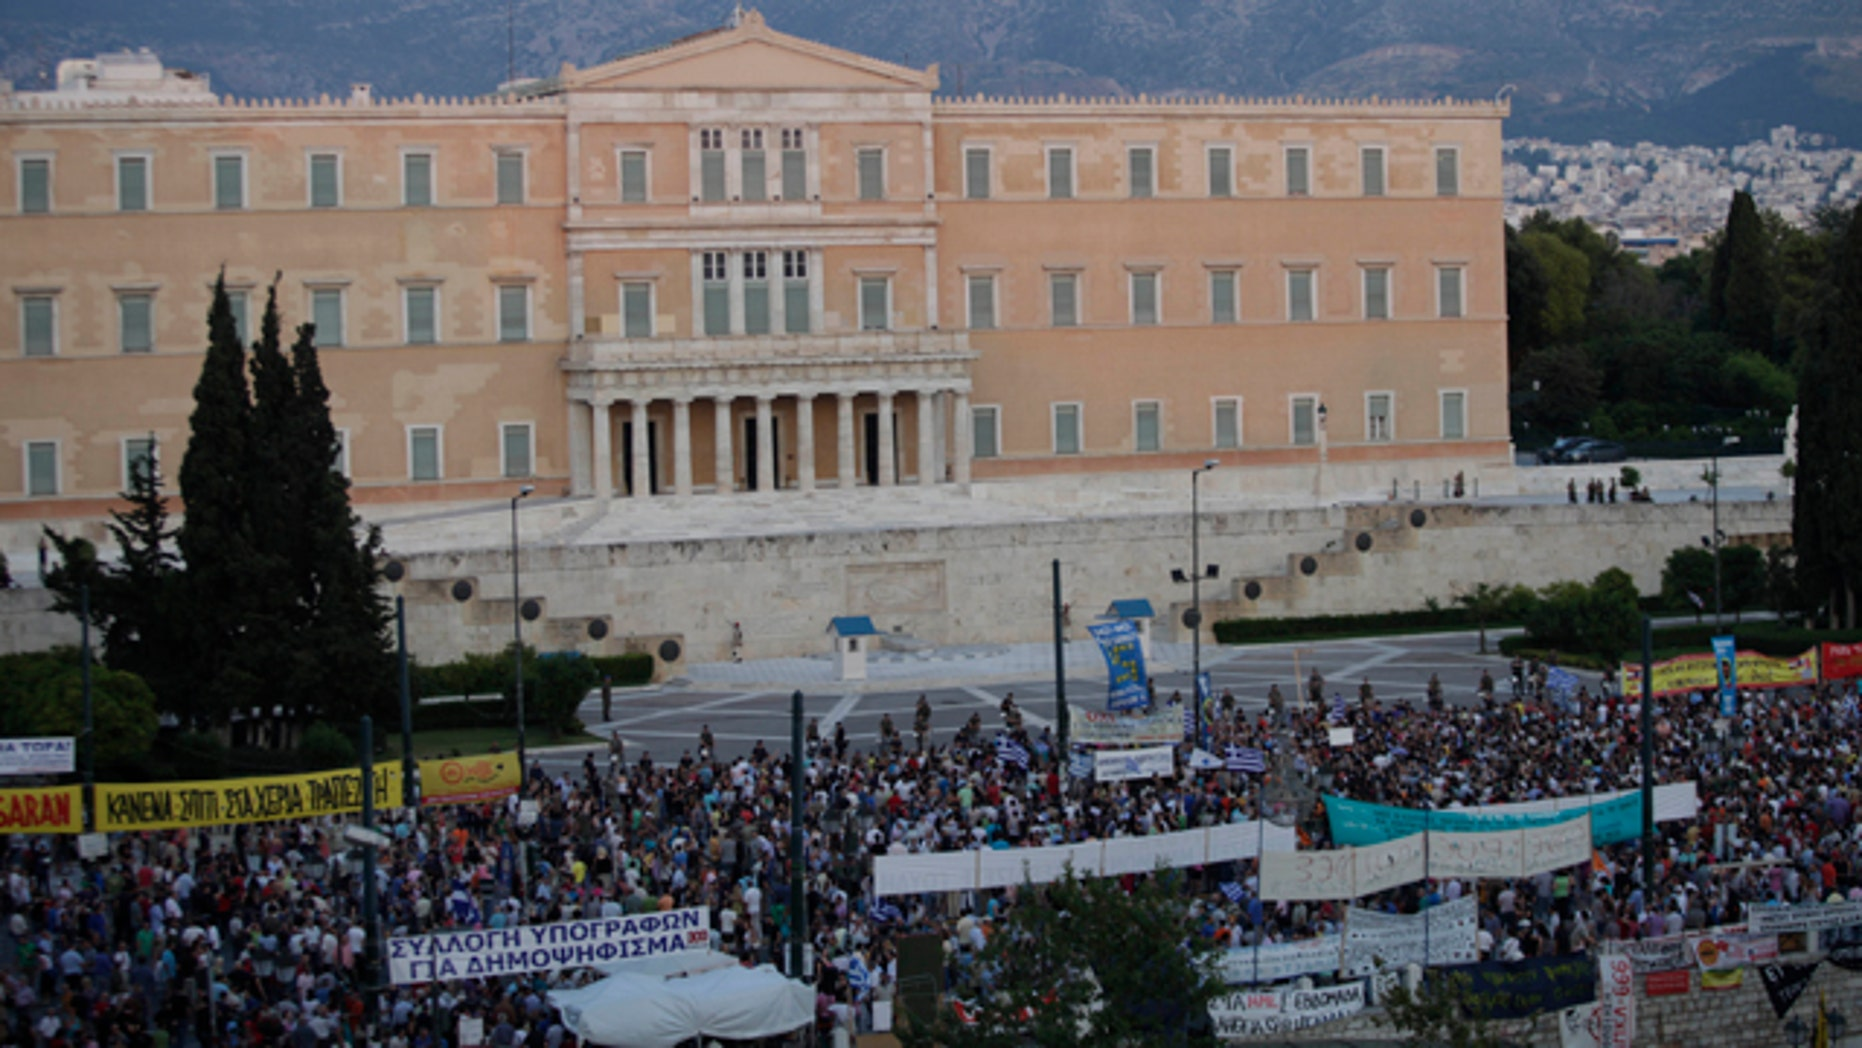 June 21: Greek protesters gather at Syntagma square in front of the Greek Parliament in central Athens, during a peaceful ongoing rally against plans for new austerity measures.